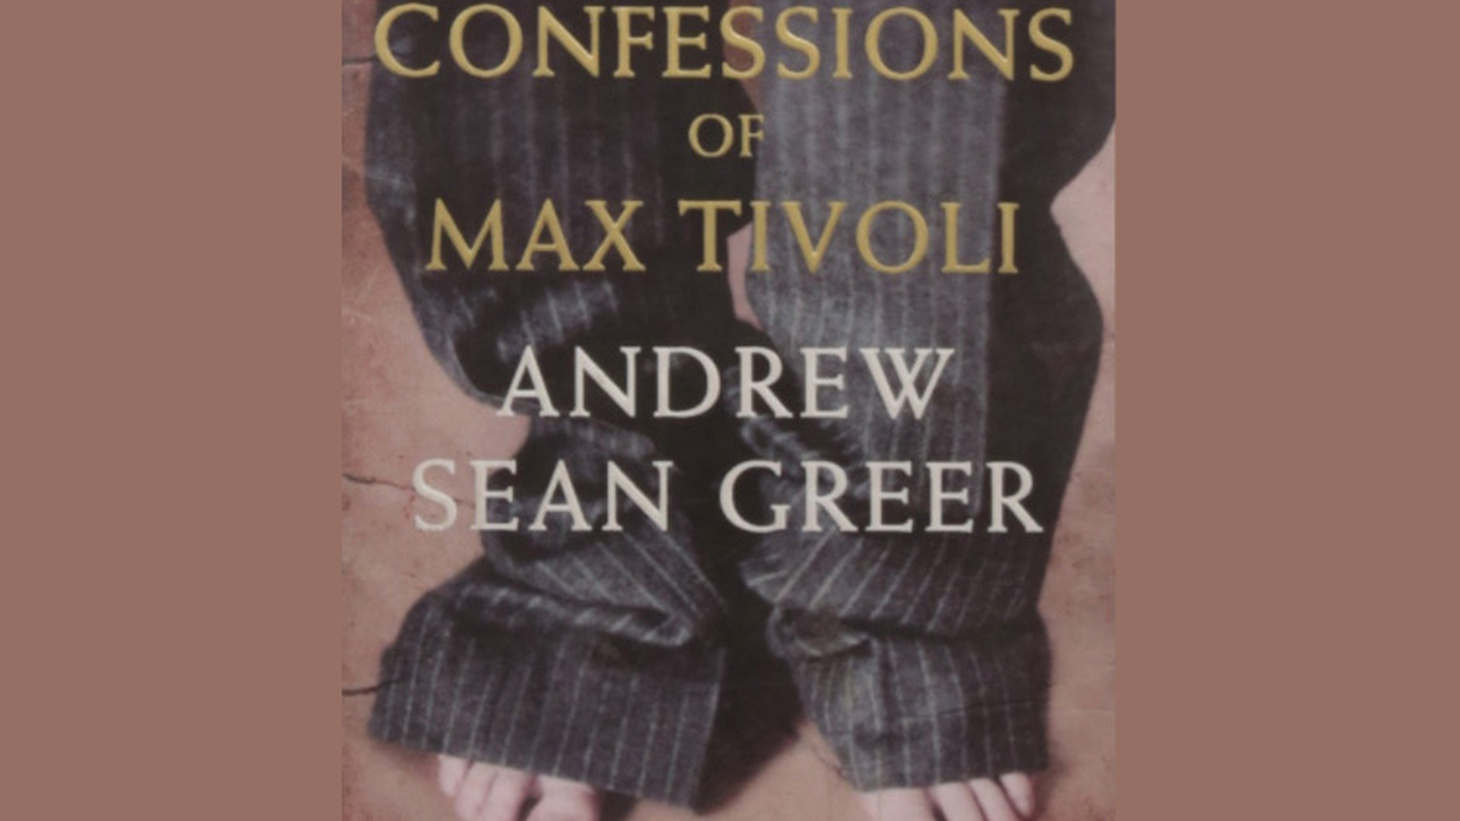 The hero of The Confessions of Max Tivoli  is born an old man who ages backwards -- not an unusual fantasy premise.